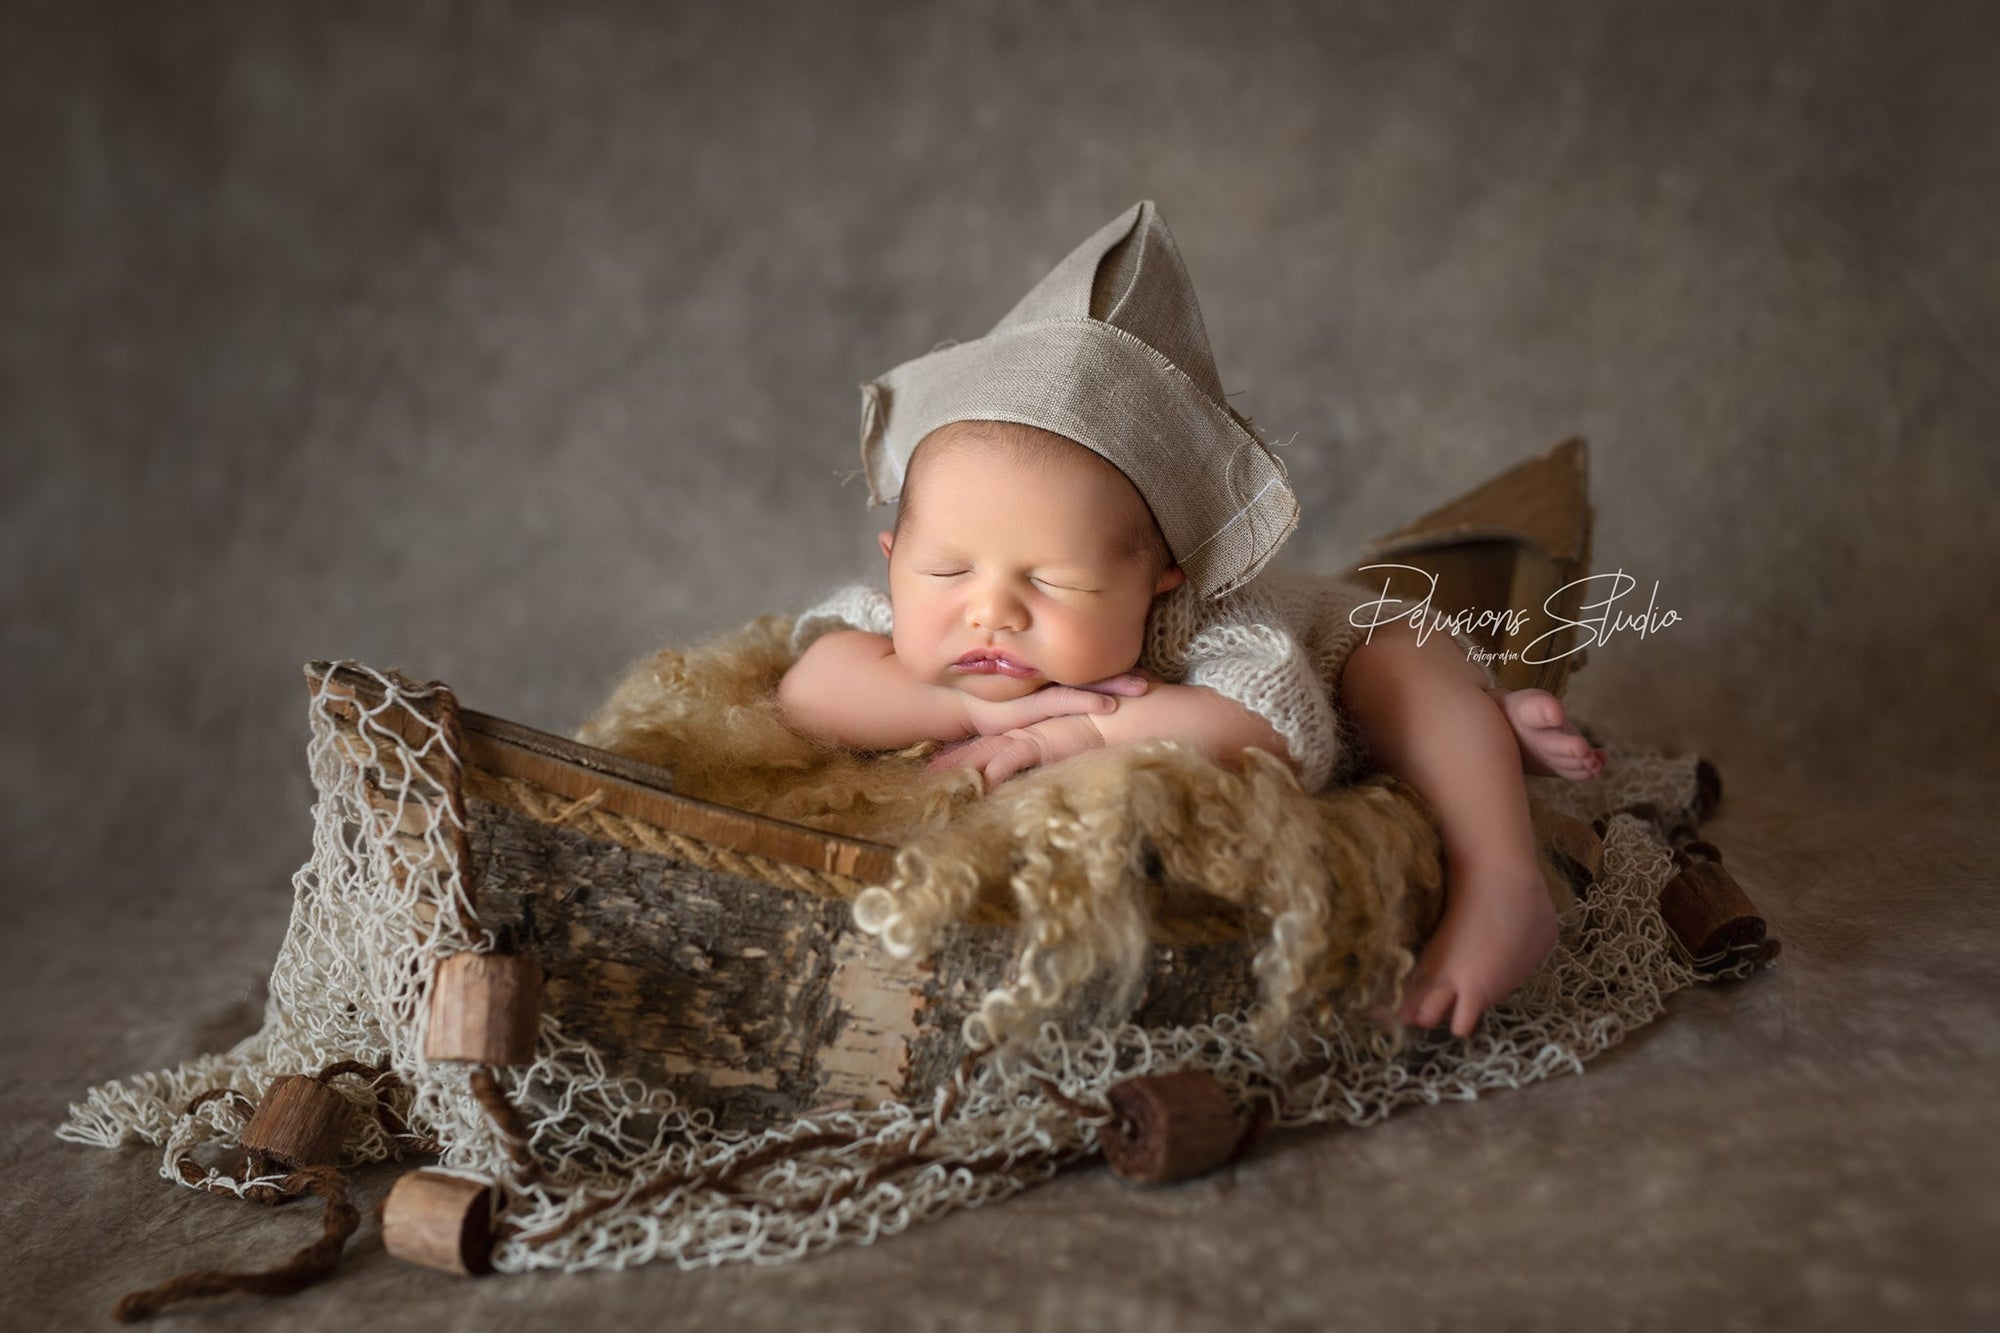 Lovely rustic handmade boat with oars made of wood. Ideal to cradle newborns during your photography shoots.